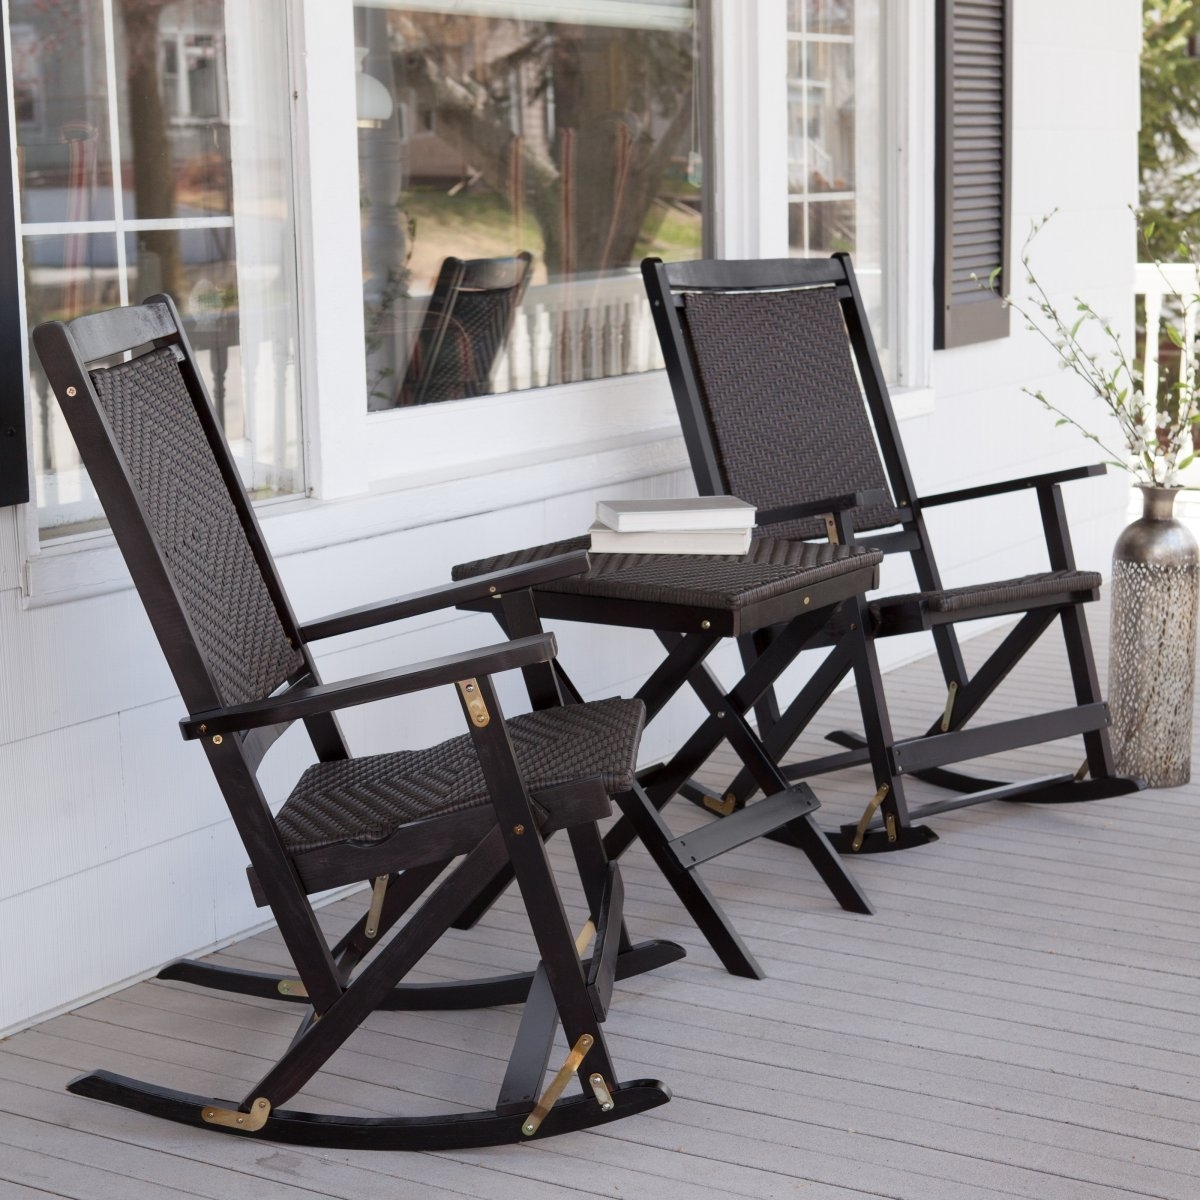 Most Recent Patio Rocking Chairs Black : Spectacular And Sensational Patio Inside Outdoor Patio Rocking Chairs (View 9 of 15)